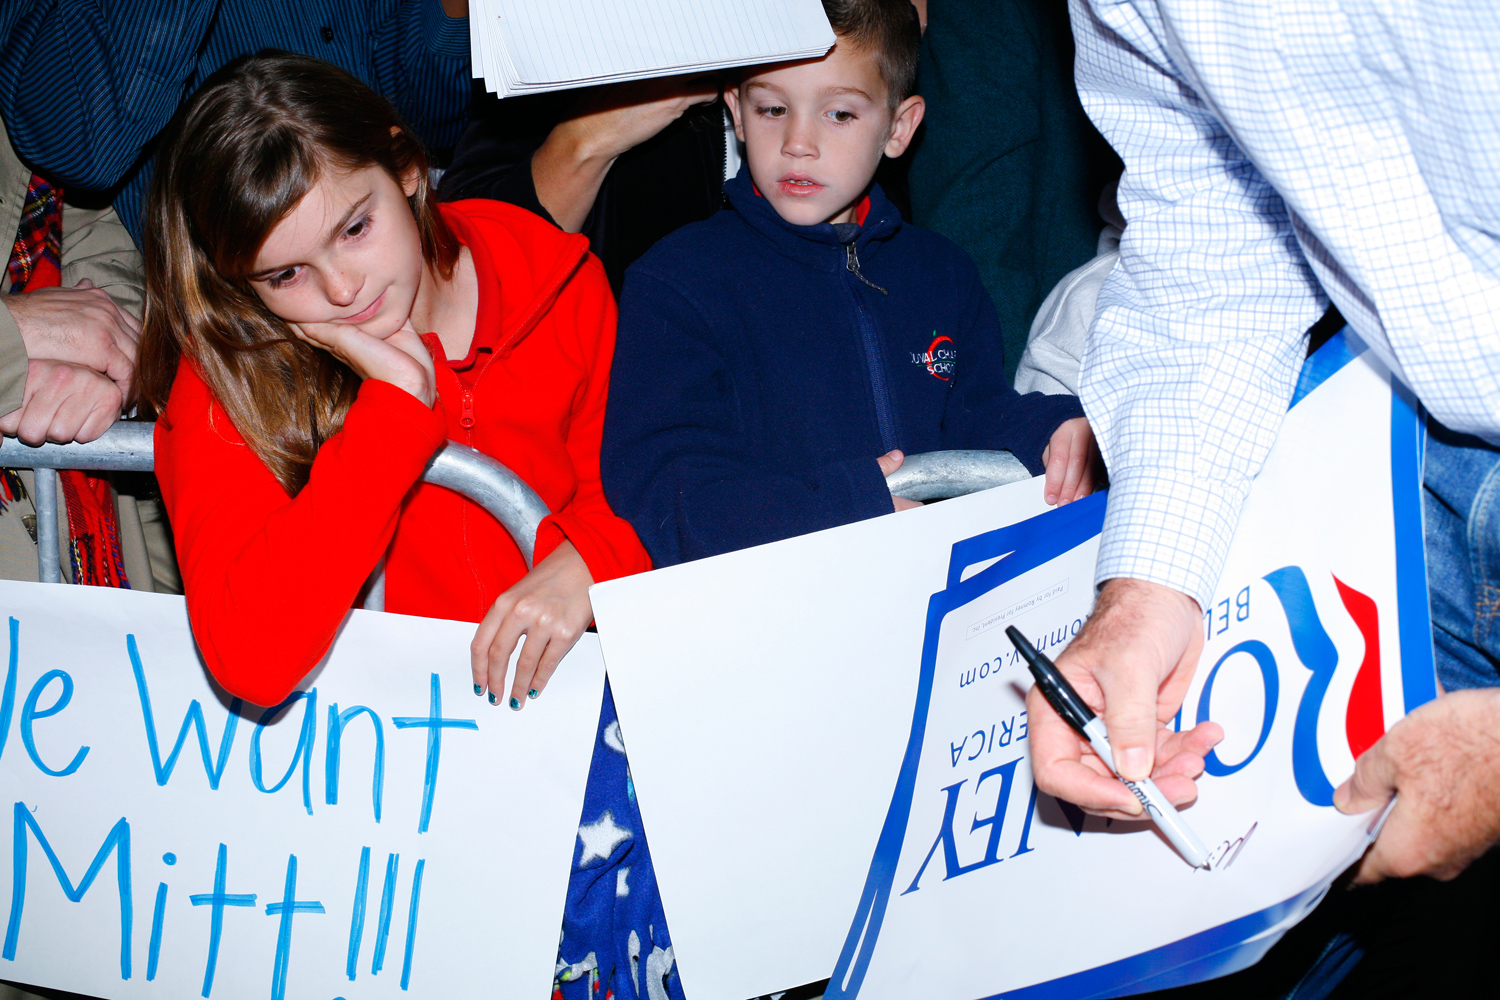 Children at Romney's campaign event at Ring Power Lift Trucks in Jacksonville, Fla., January 30, 2012.